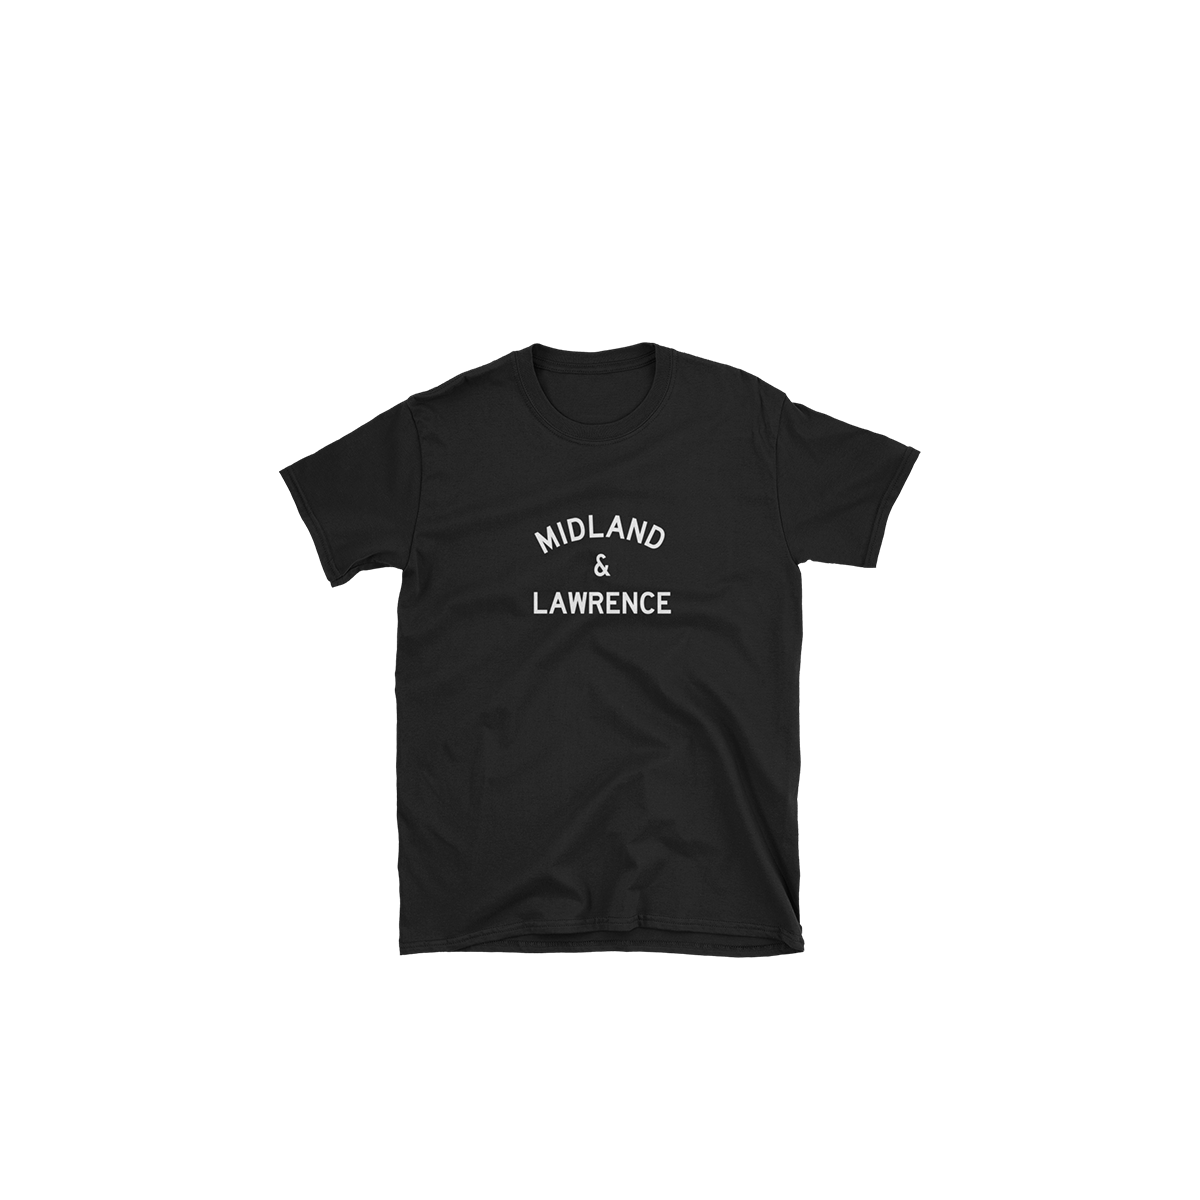 Midland & Lawrence T-Shirt